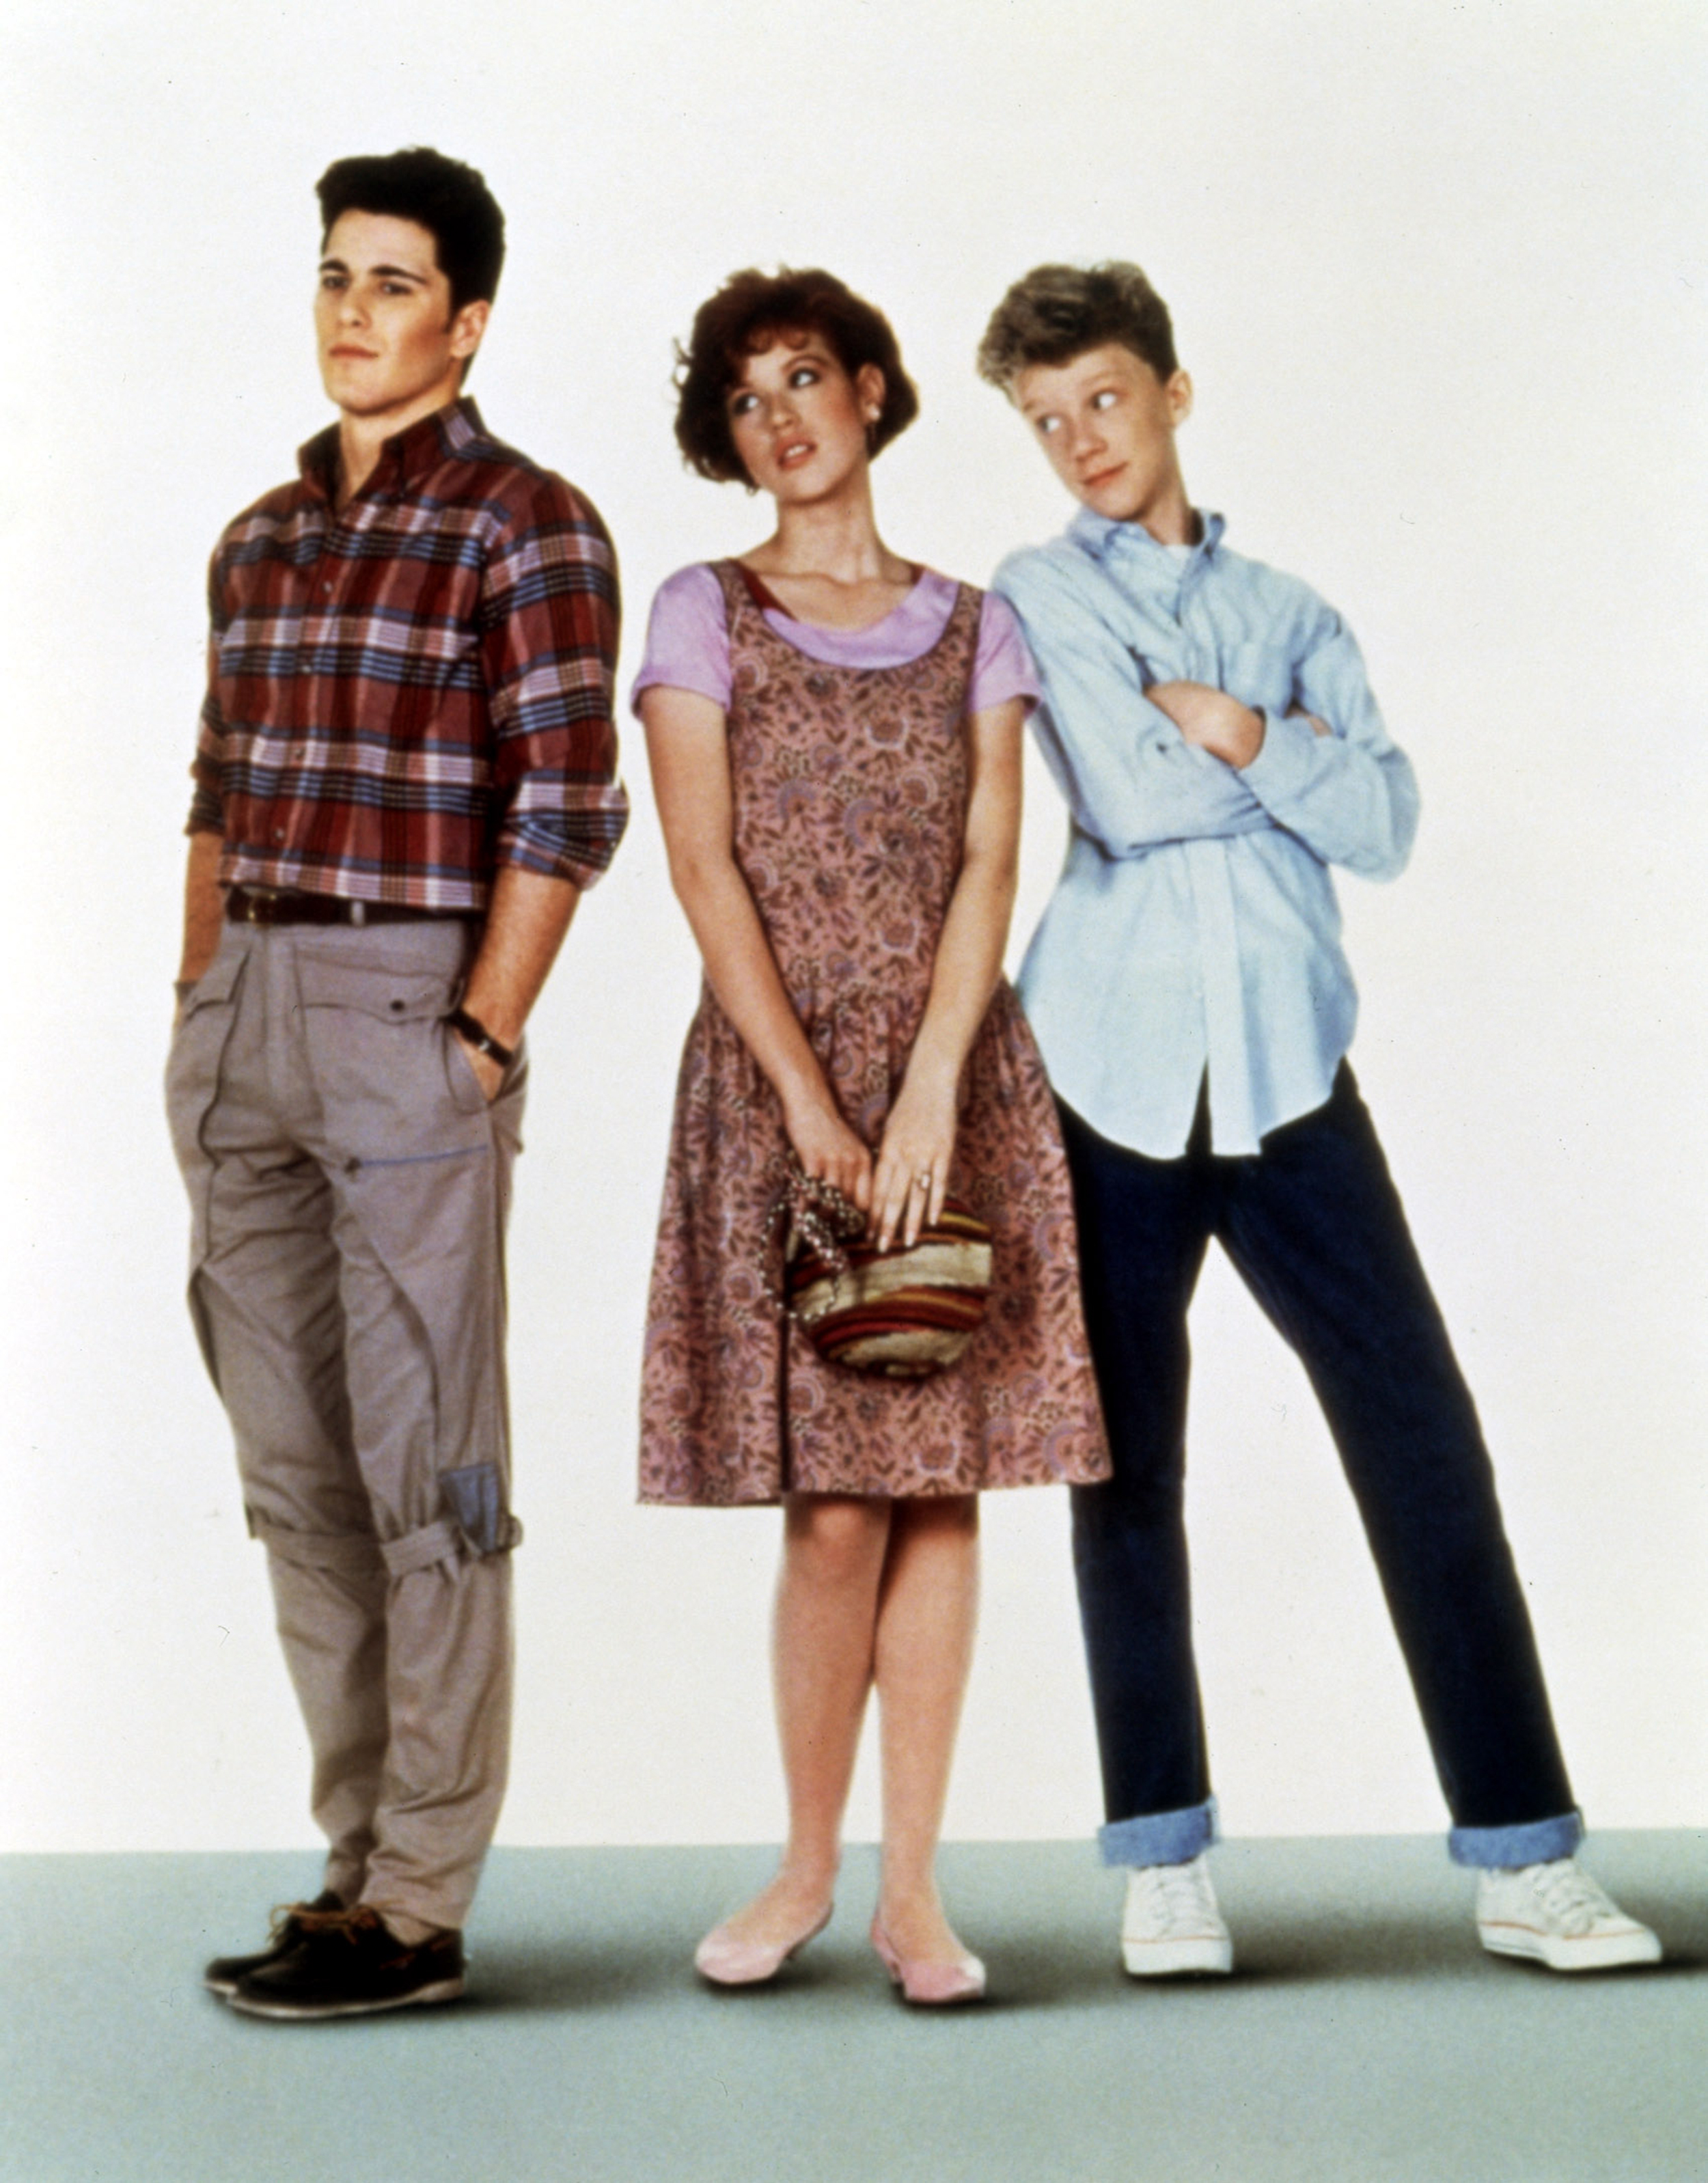 Molly Ringwald Looks Back On Sixteen Candles In Light Of Metoo Movement